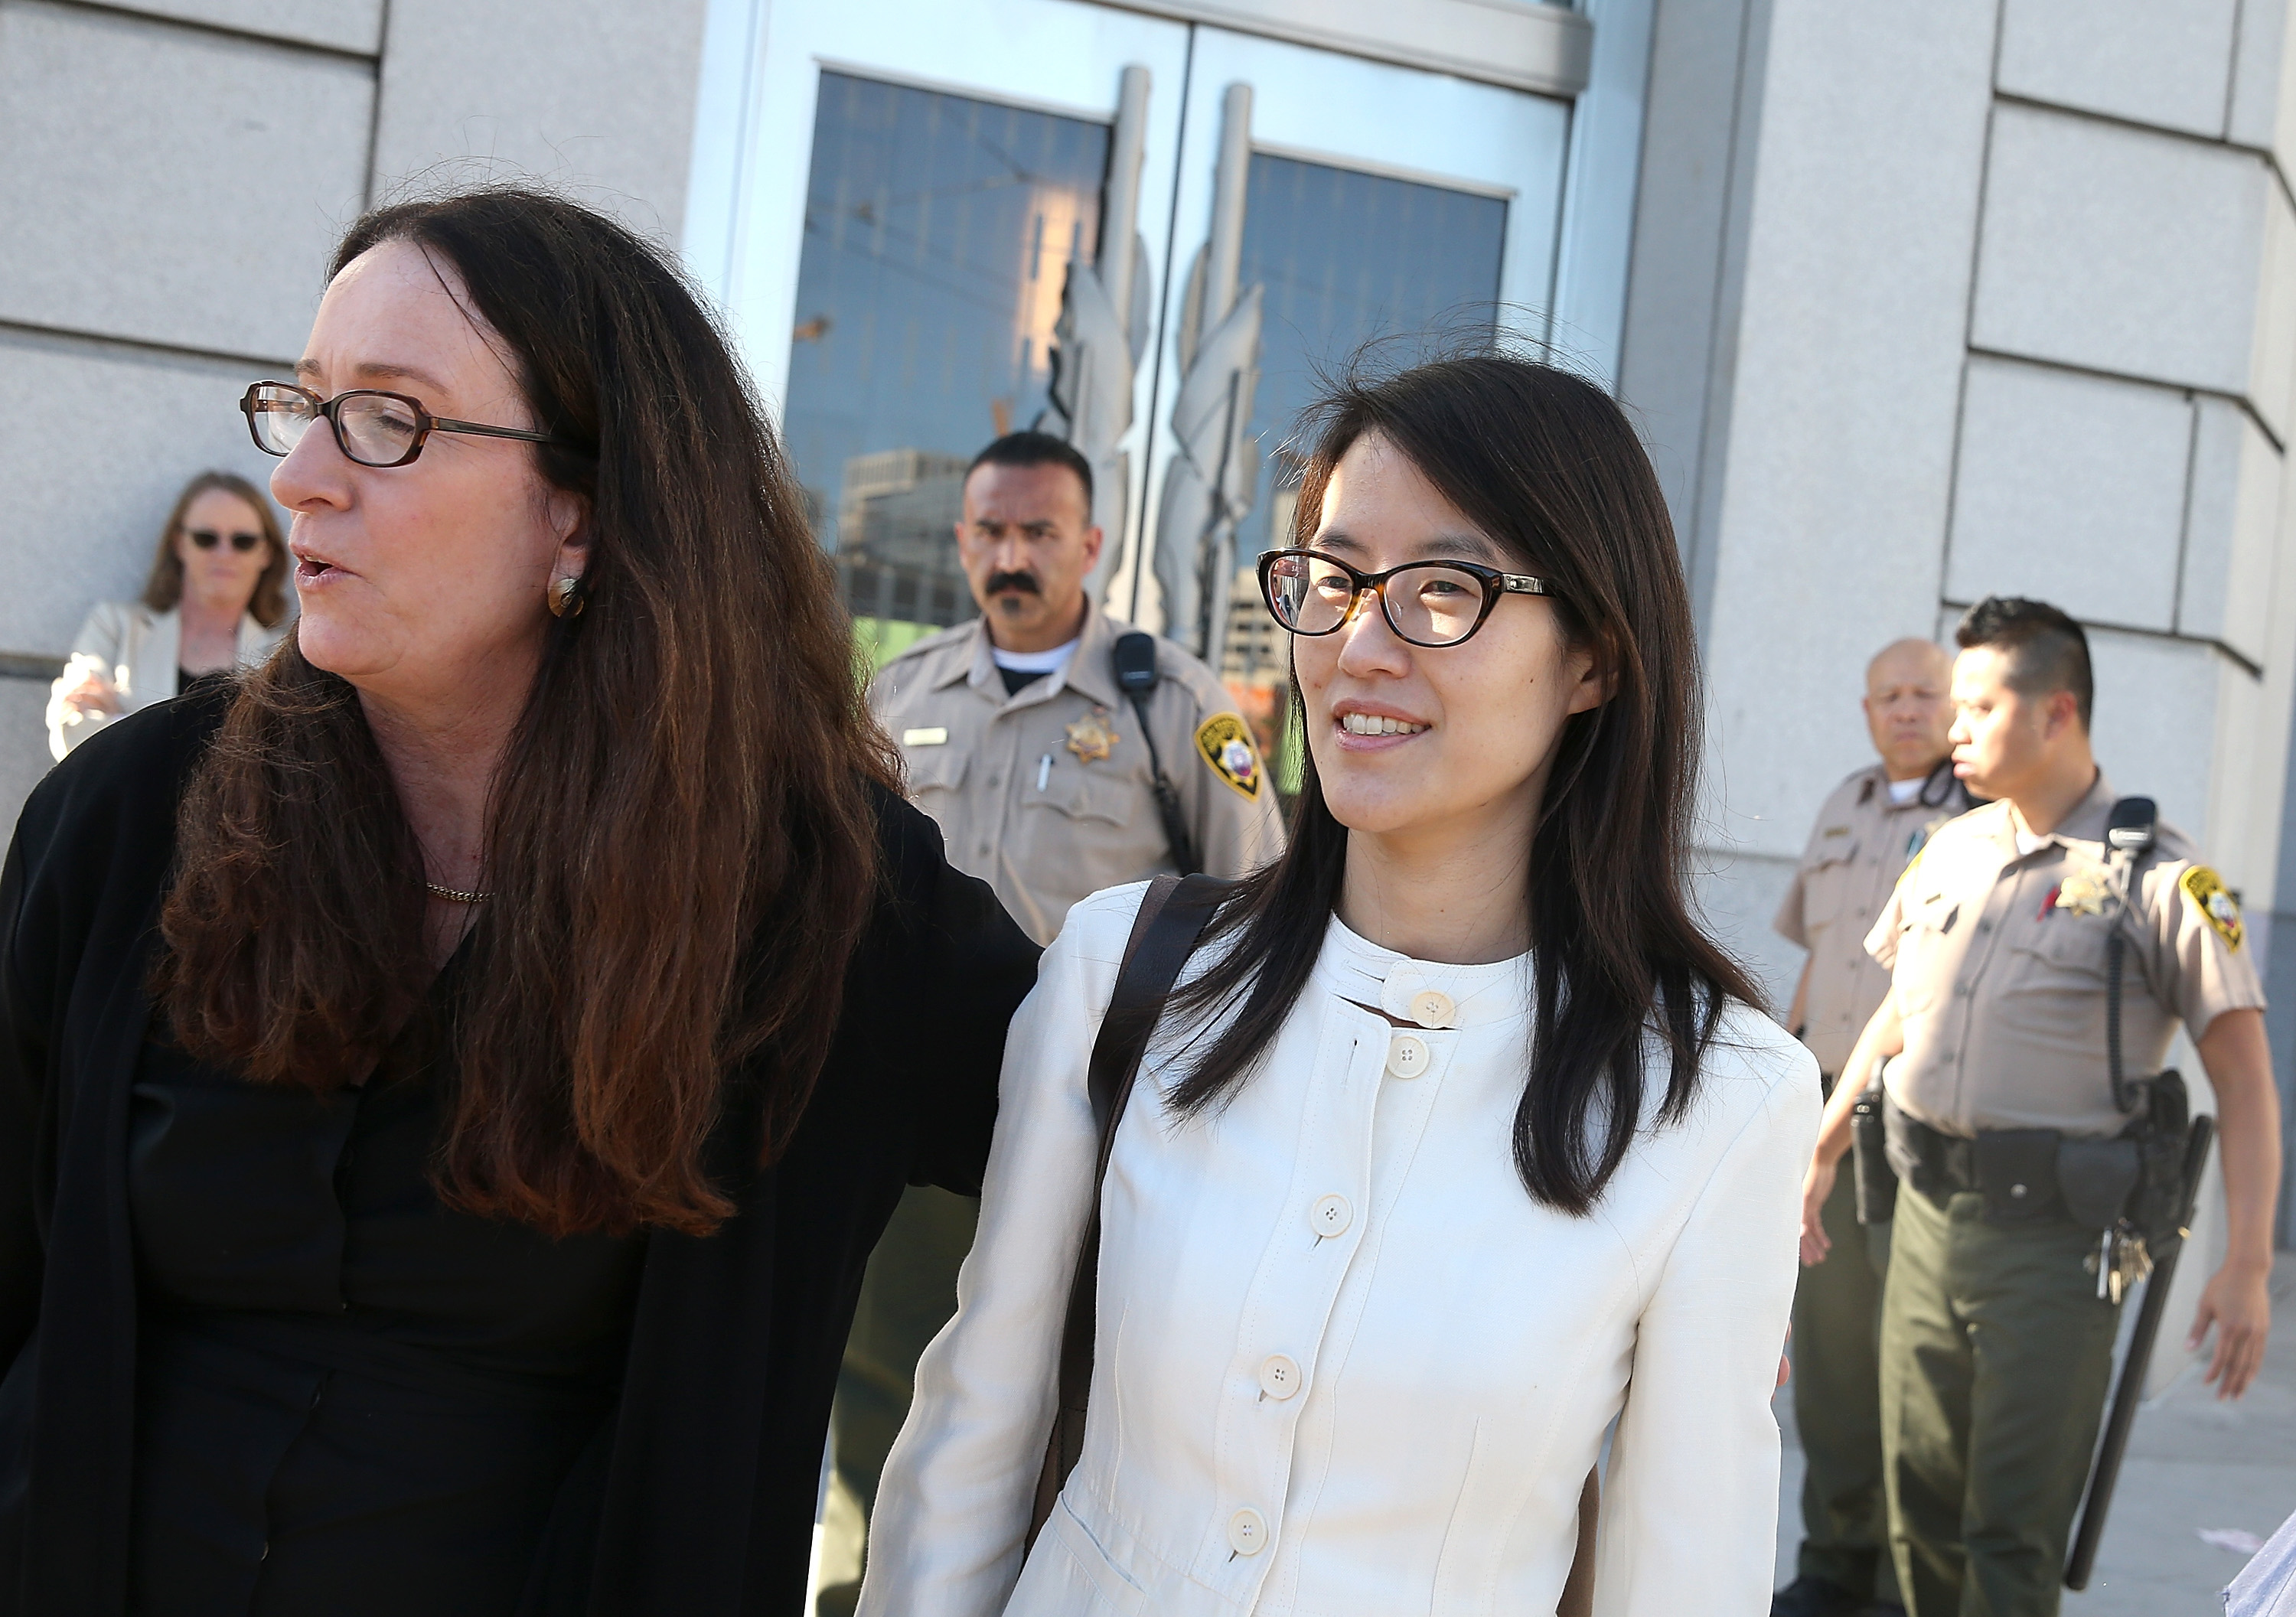 Ellen Pao, right, leaves the San Francisco Superior Court Civic Center Courthouse with her attorney Therese Lawless in San Francisco on March 27, 2015